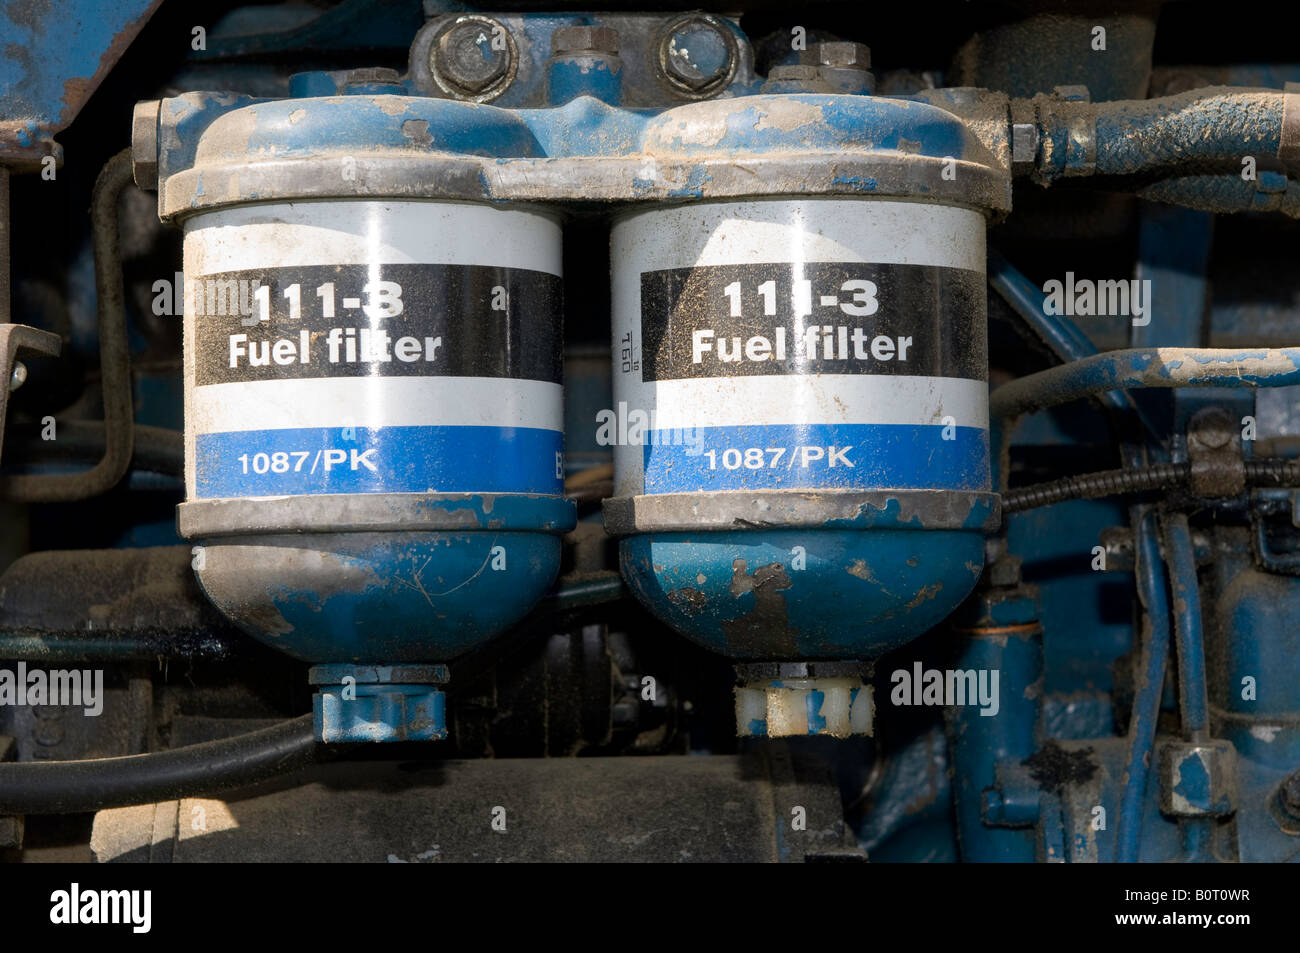 Fuel filters on a Ford 4400 tractor - Stock Image